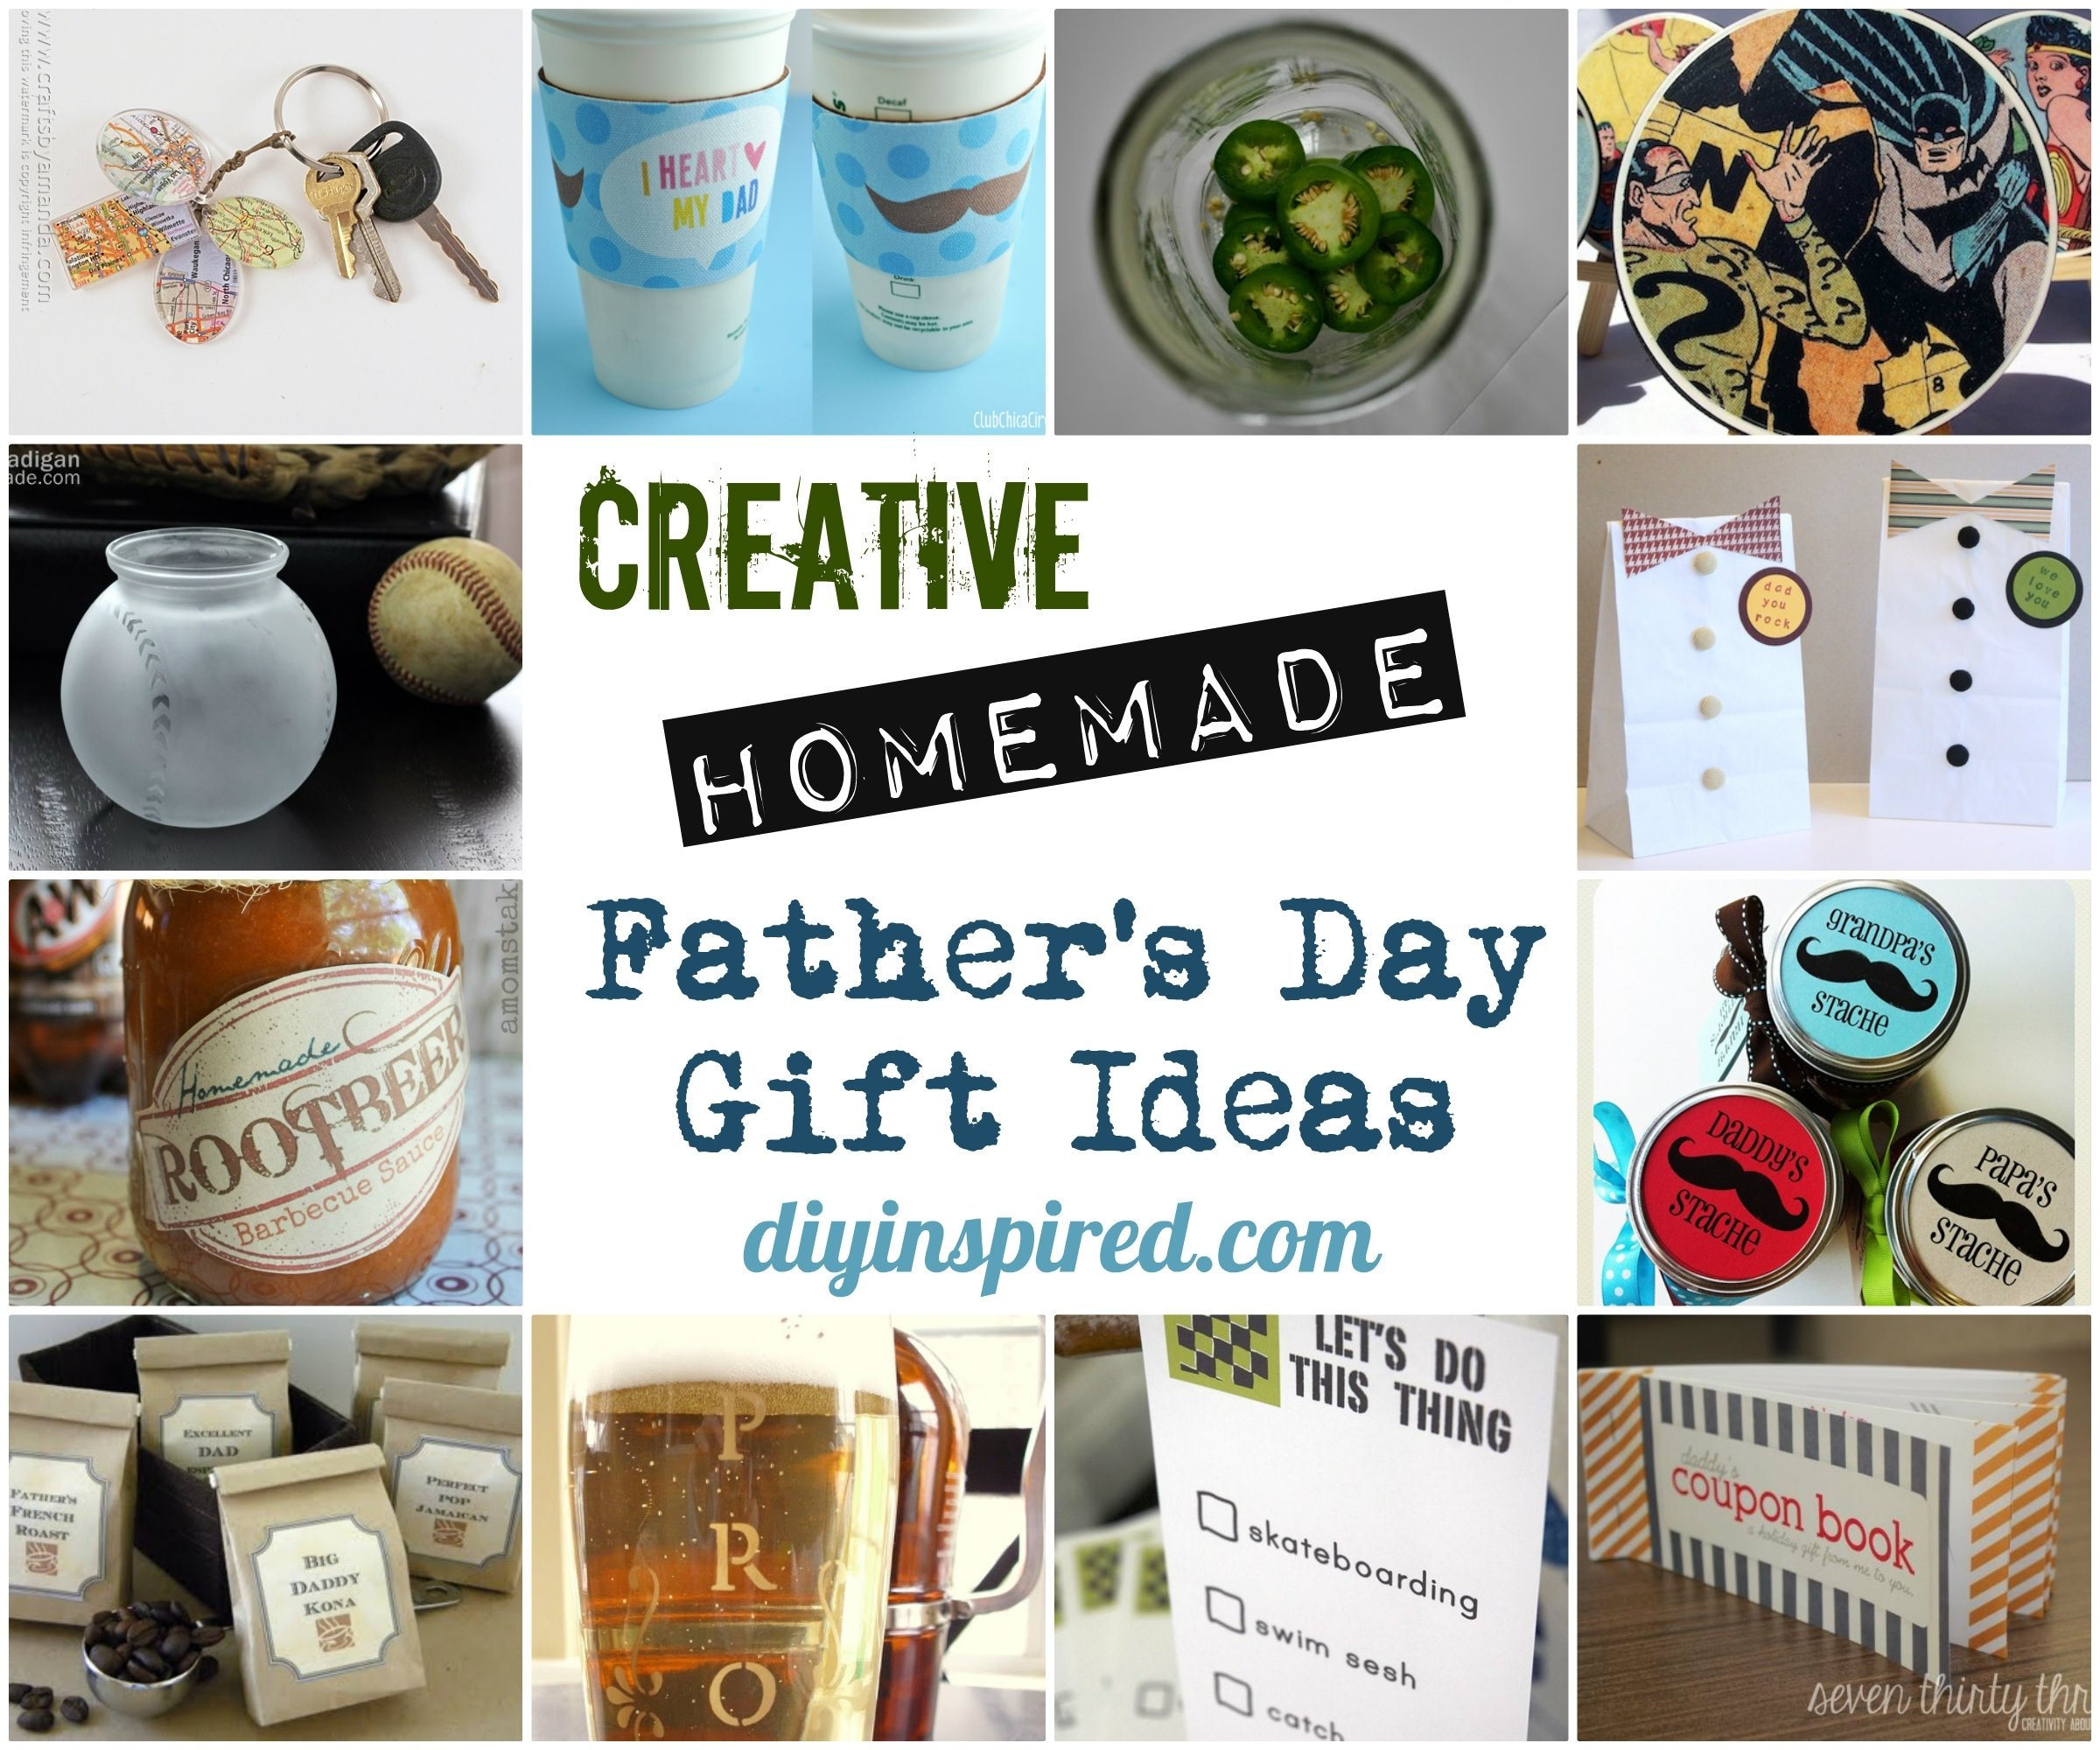 10 Great Gift Idea For Dad Who Has Everything creative homemade fathers day gift ideas diy inspired 1 2020